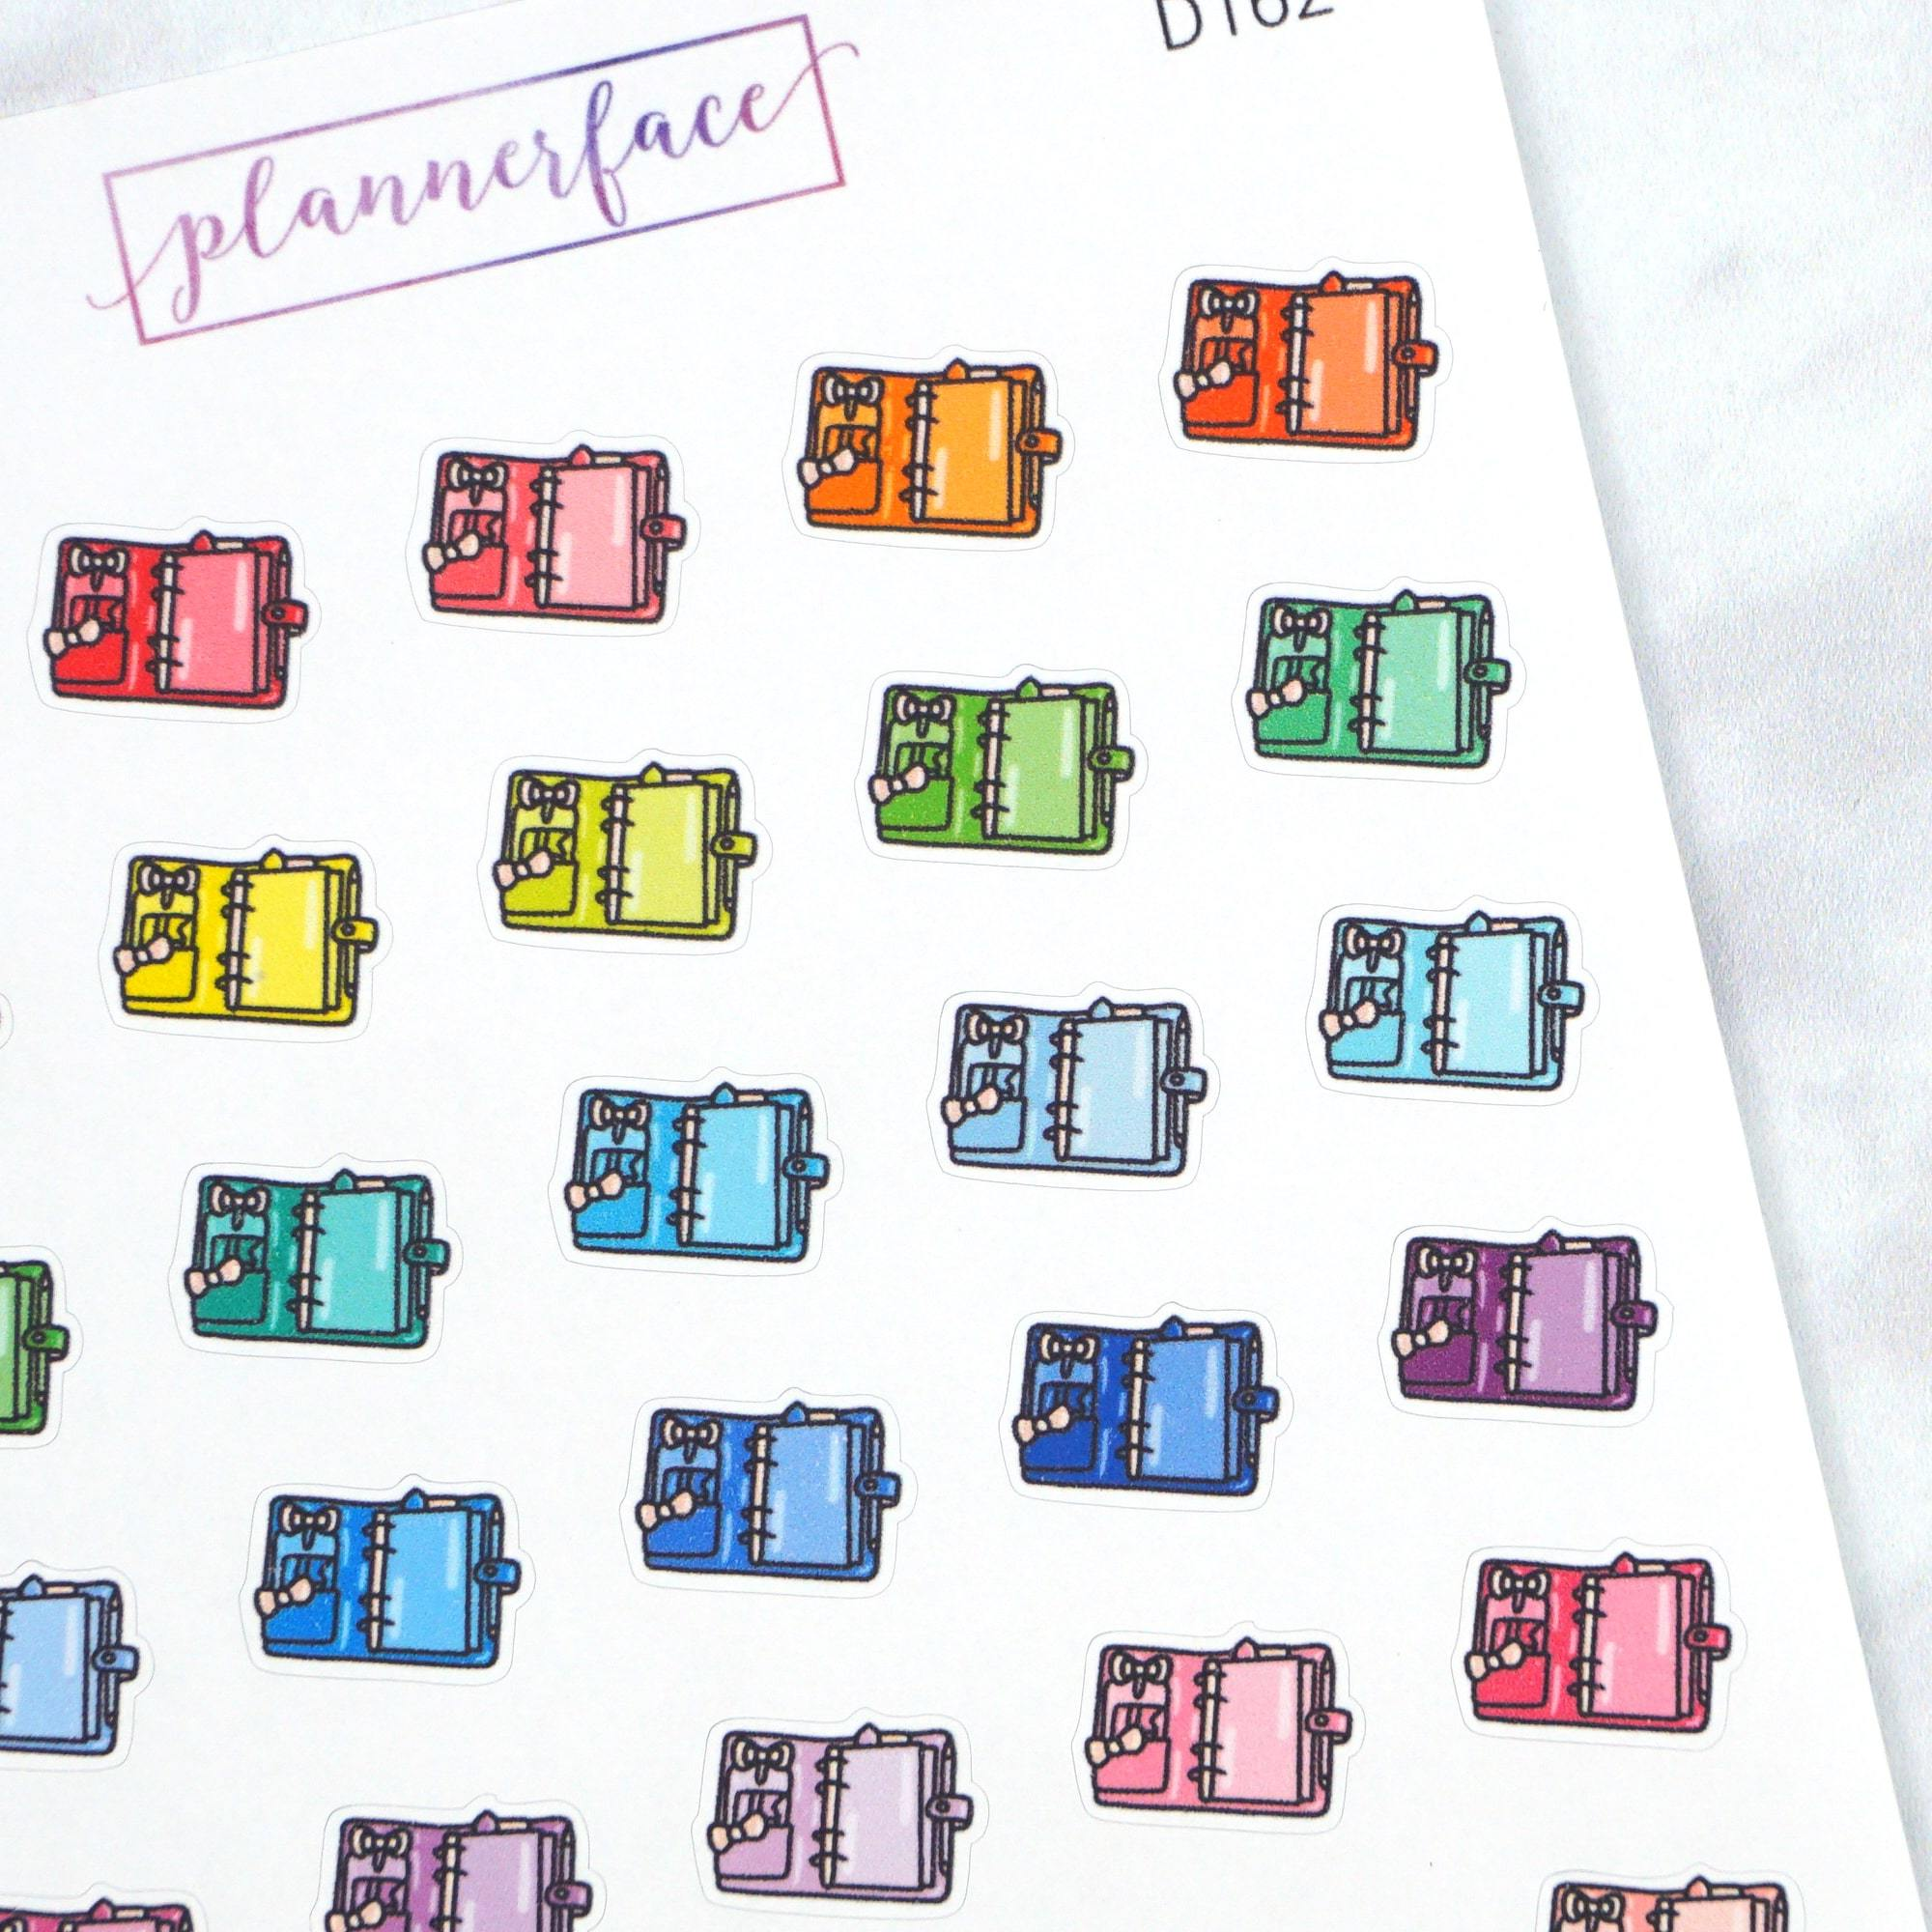 Plannerface Planner Multicolour Doodles Planner Stickers